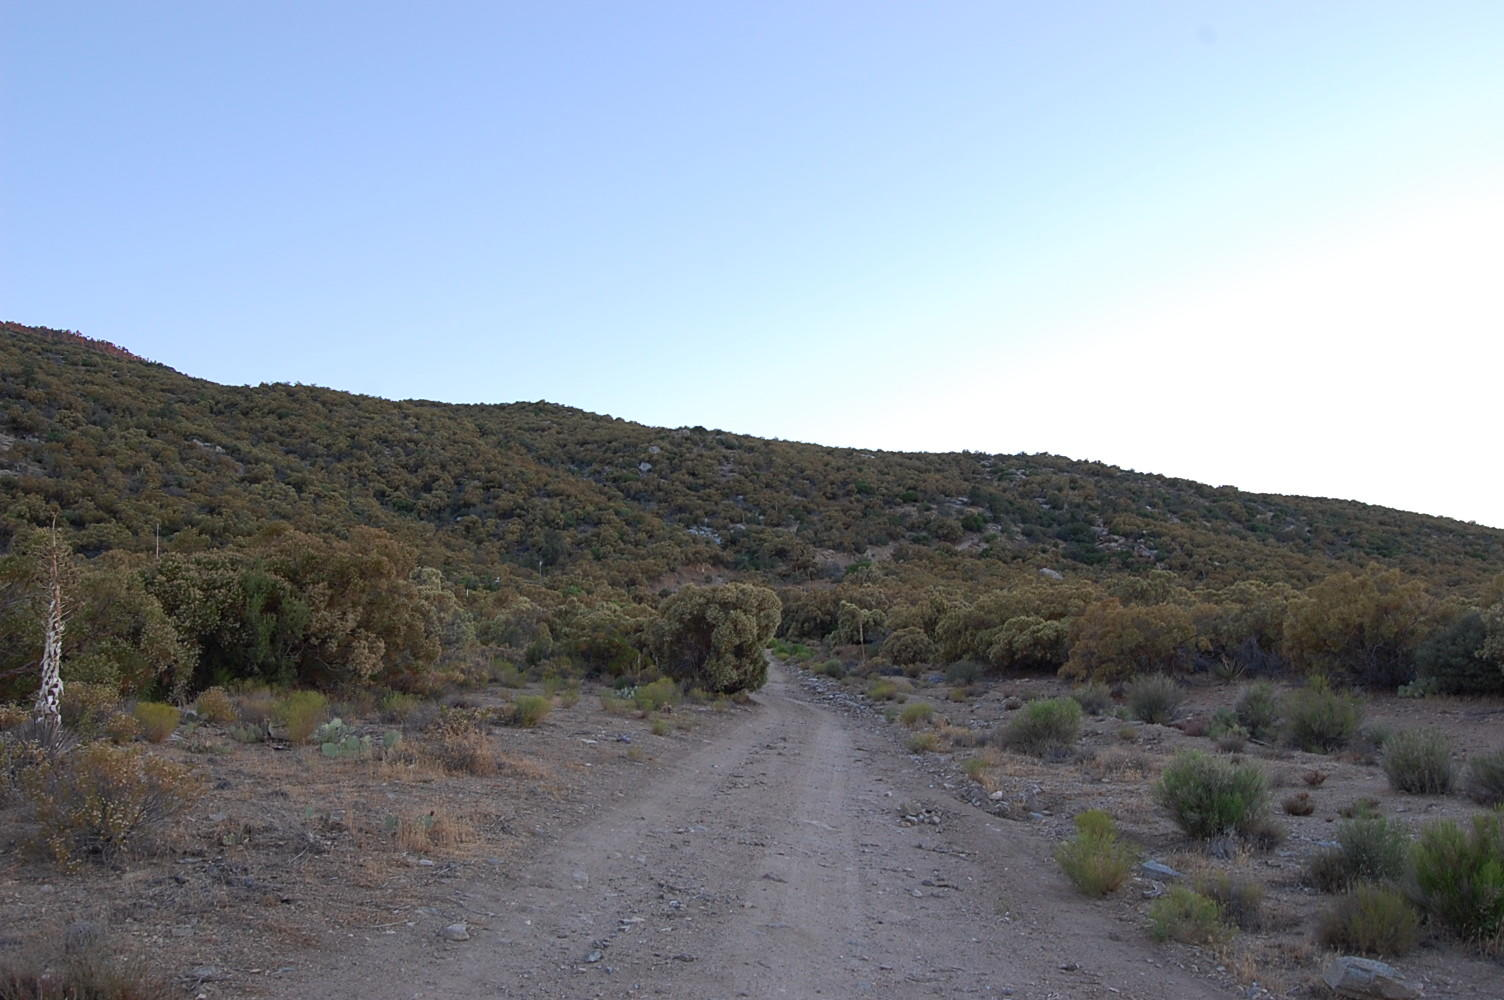 Magnificent 1 Acre Escape 45 minutes from Palm Springs - Image 4